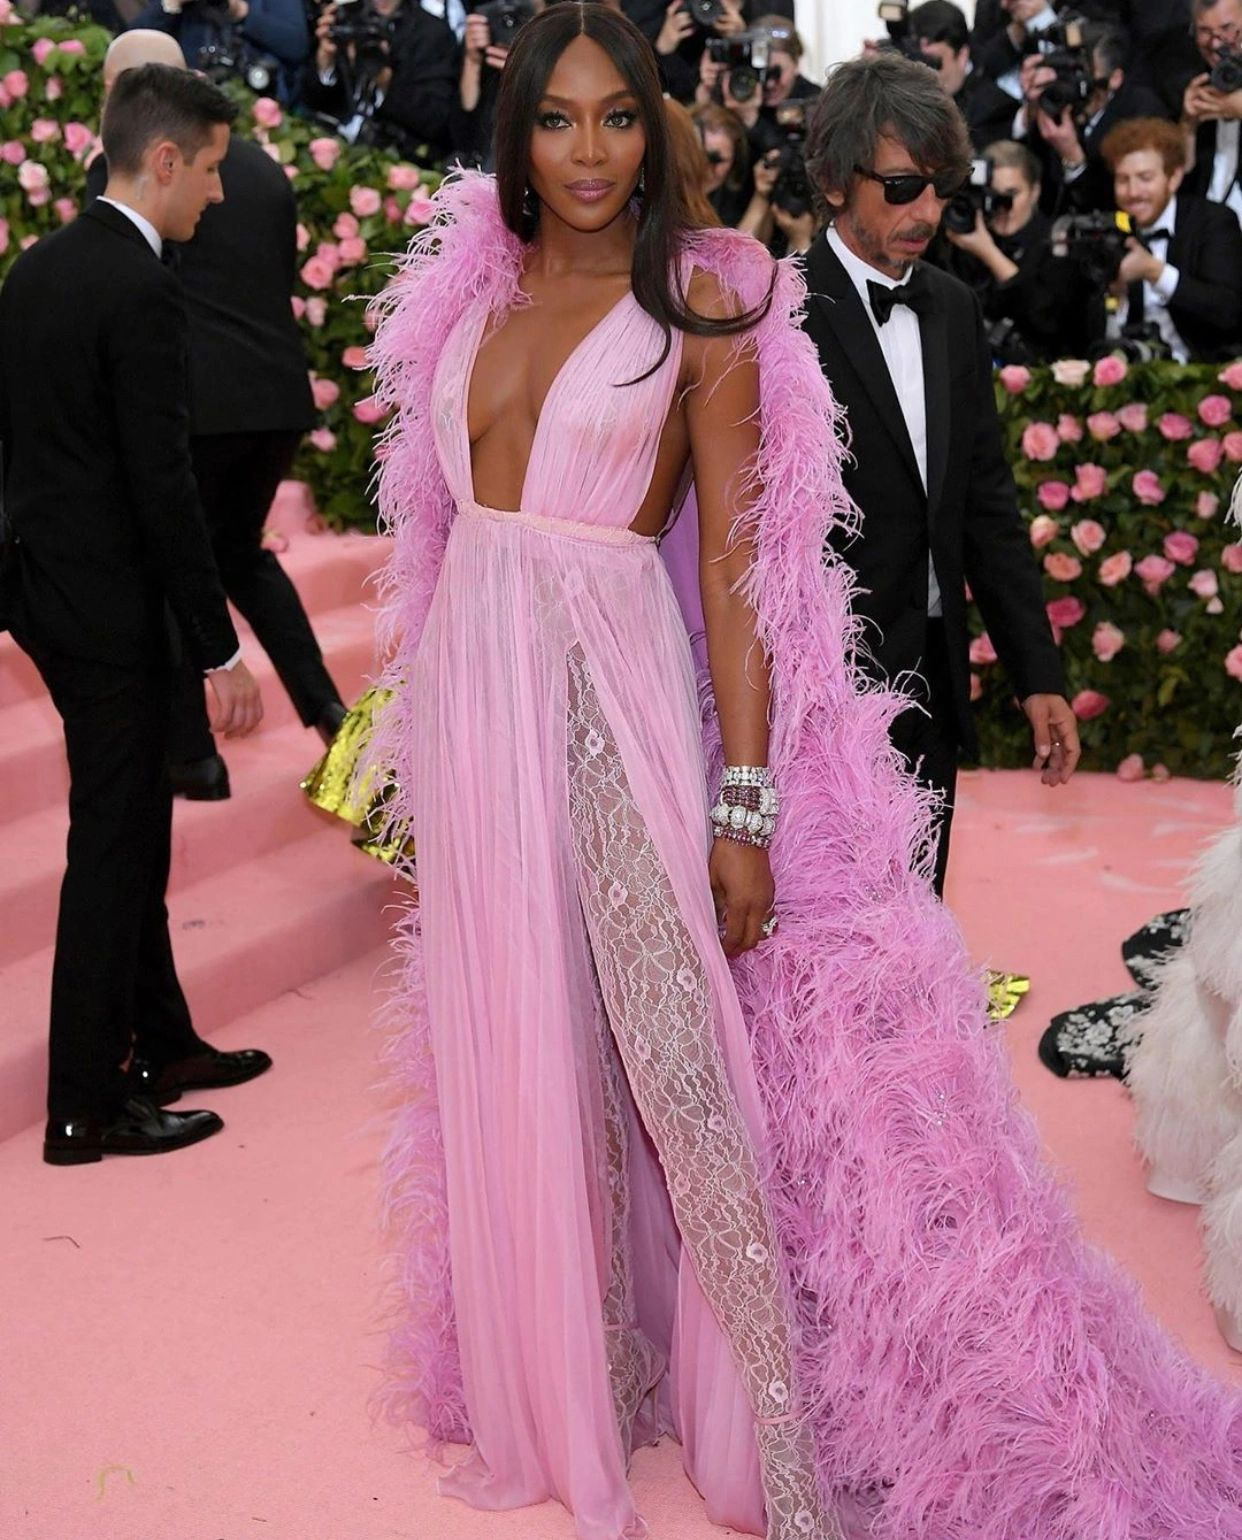 Met Gala, 2019: Naomi Campbell. (Getty Images)